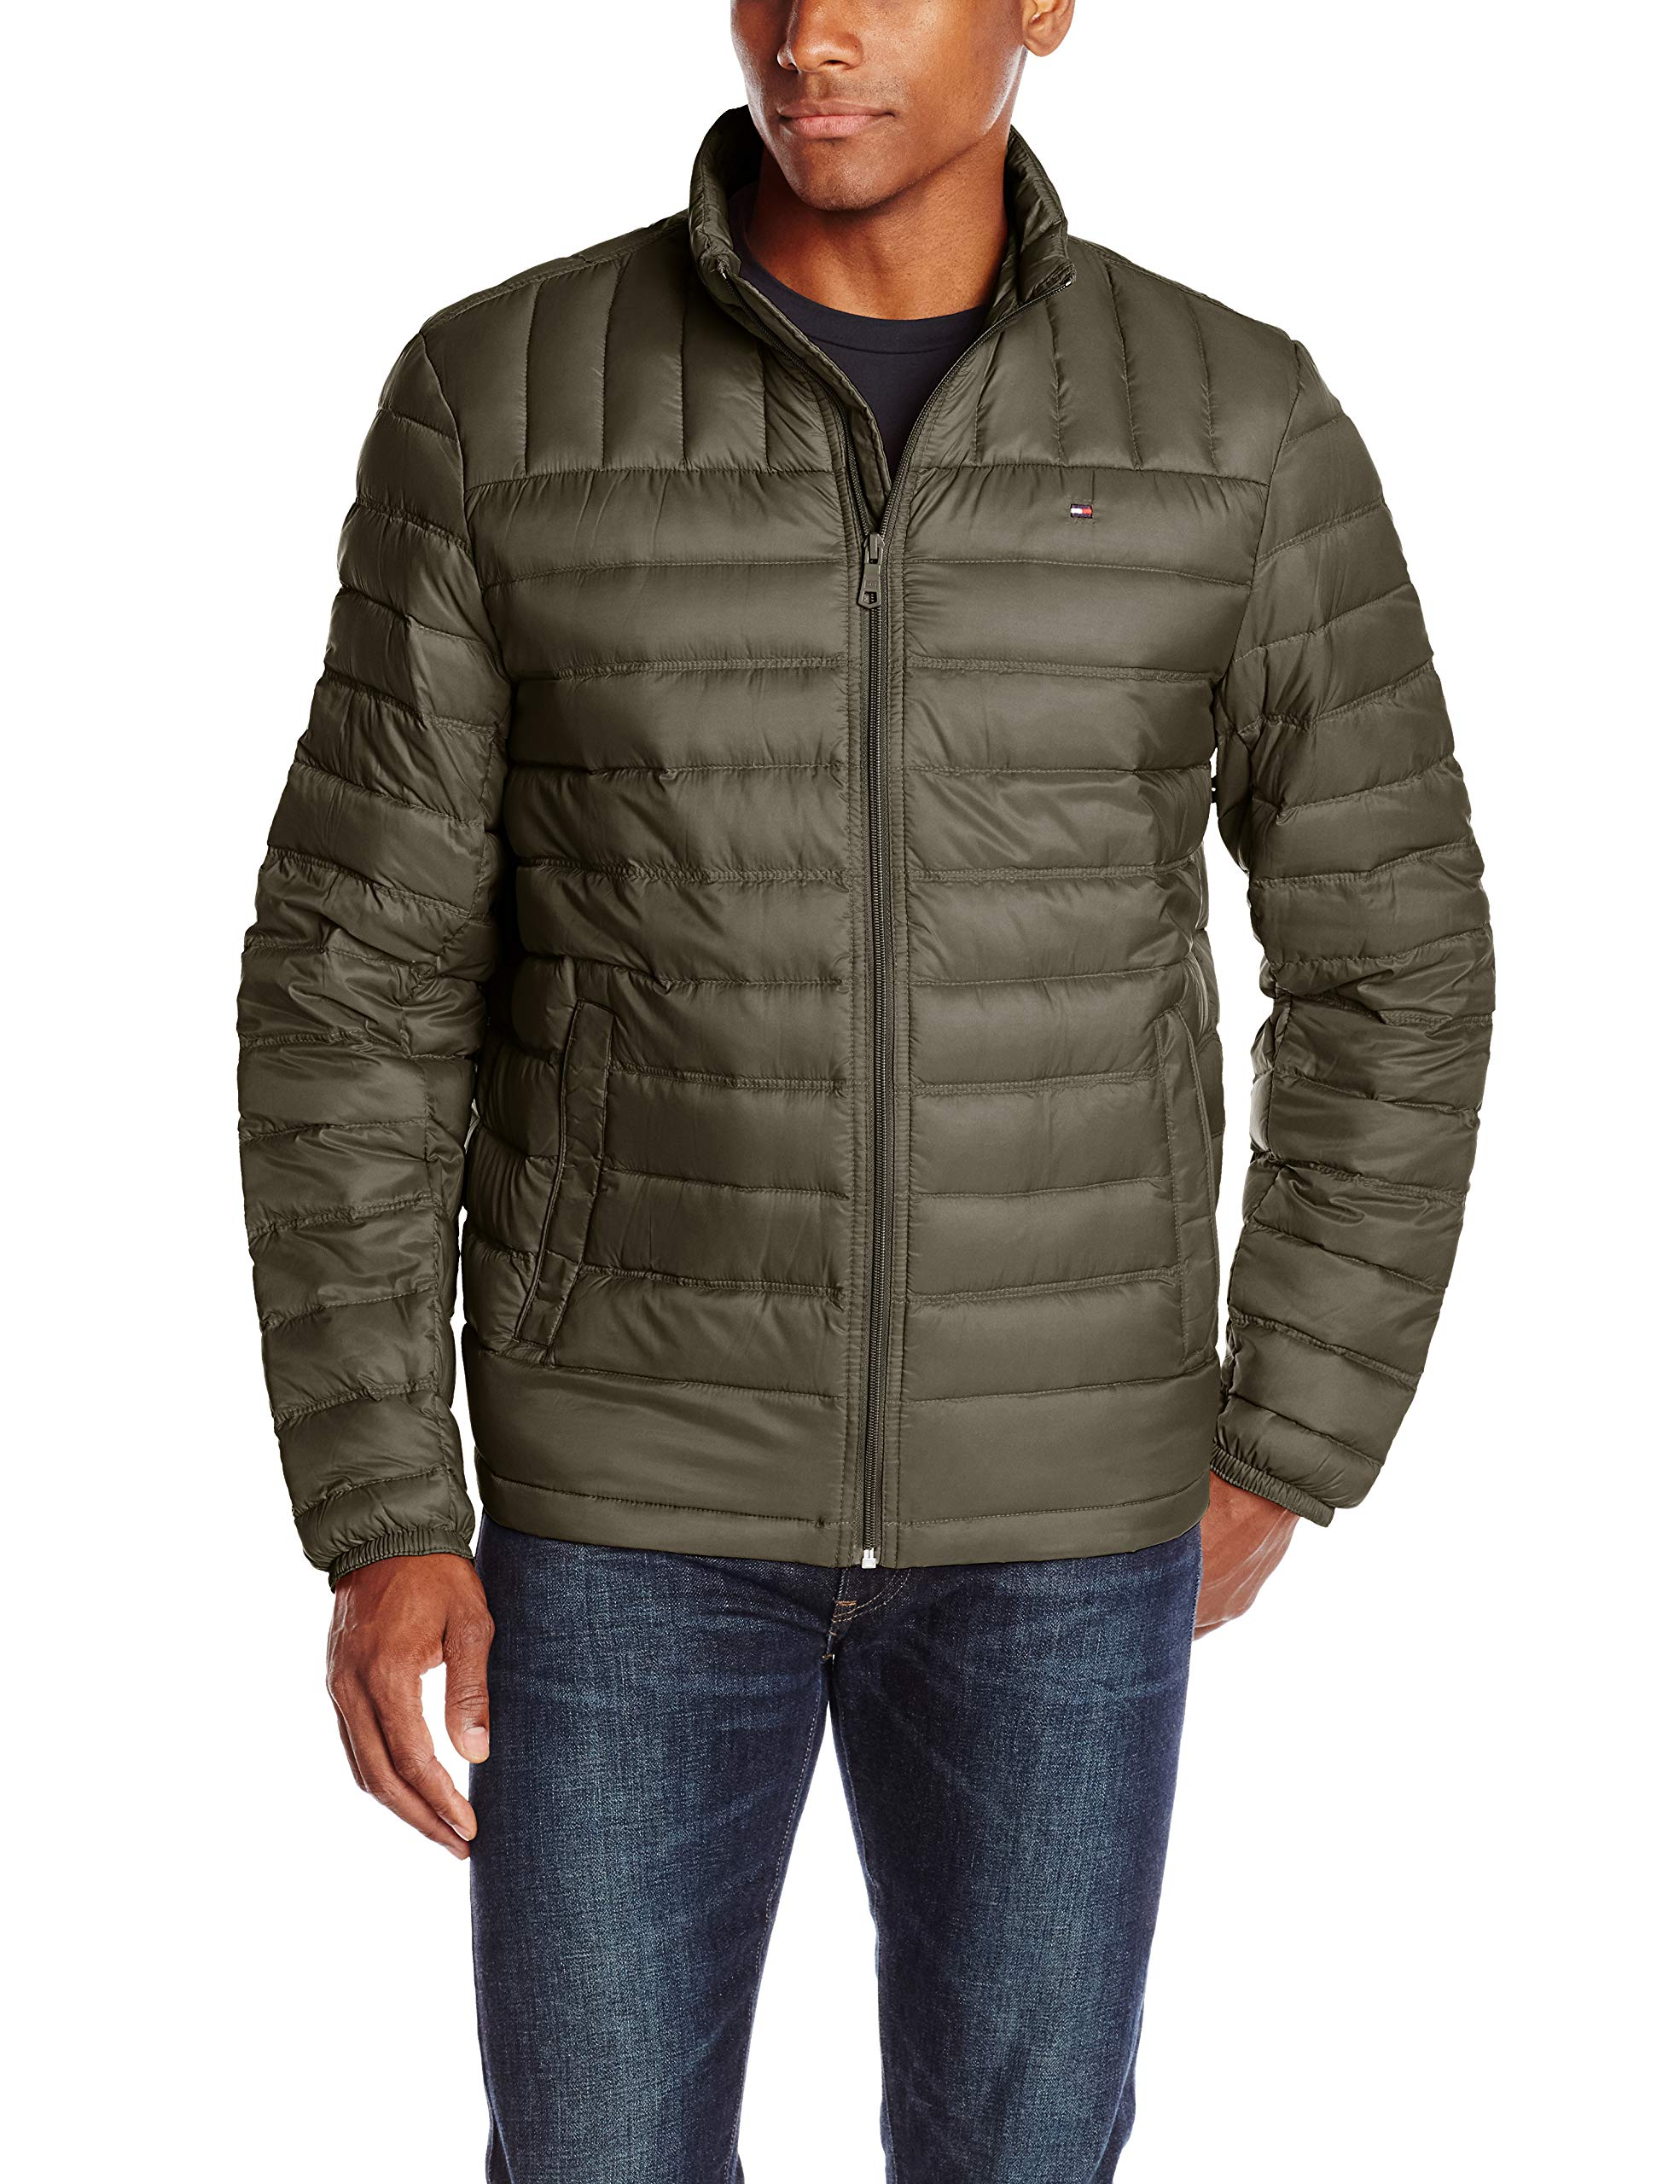 Tommy Hilfiger Men's Packable Down Jacket (Regular and Big & Tall Sizes), Olive, 2X TALL